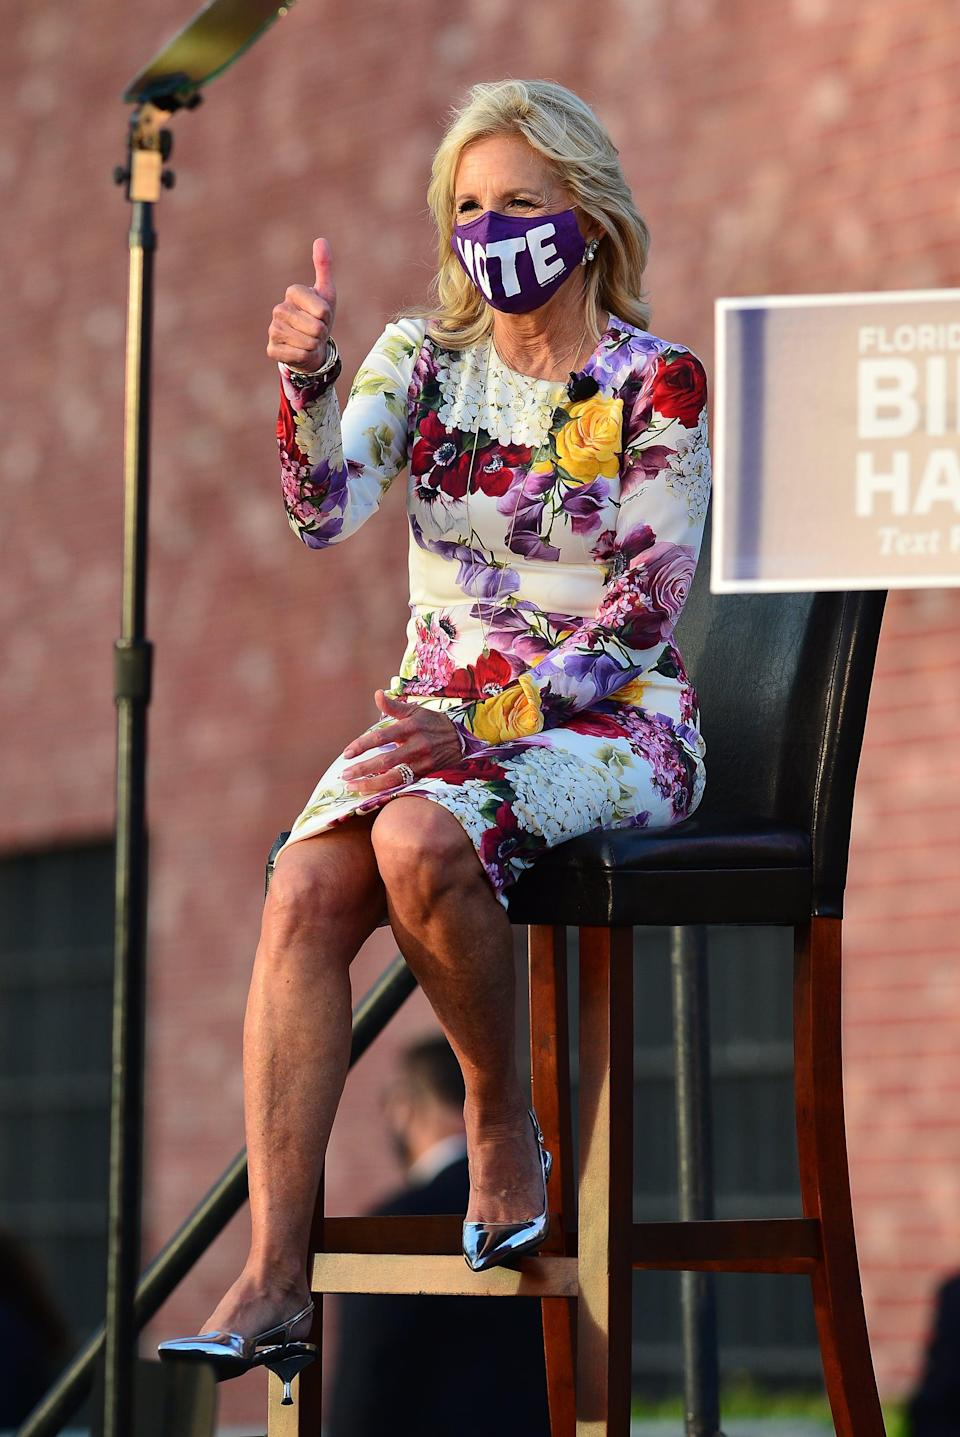 <p>Dr. Biden wore her fair share of slogans and encouraging messages throughout the 2020 campaign, most regularly encouraging Americans to cast their ballots with her VOTE mask.</p>